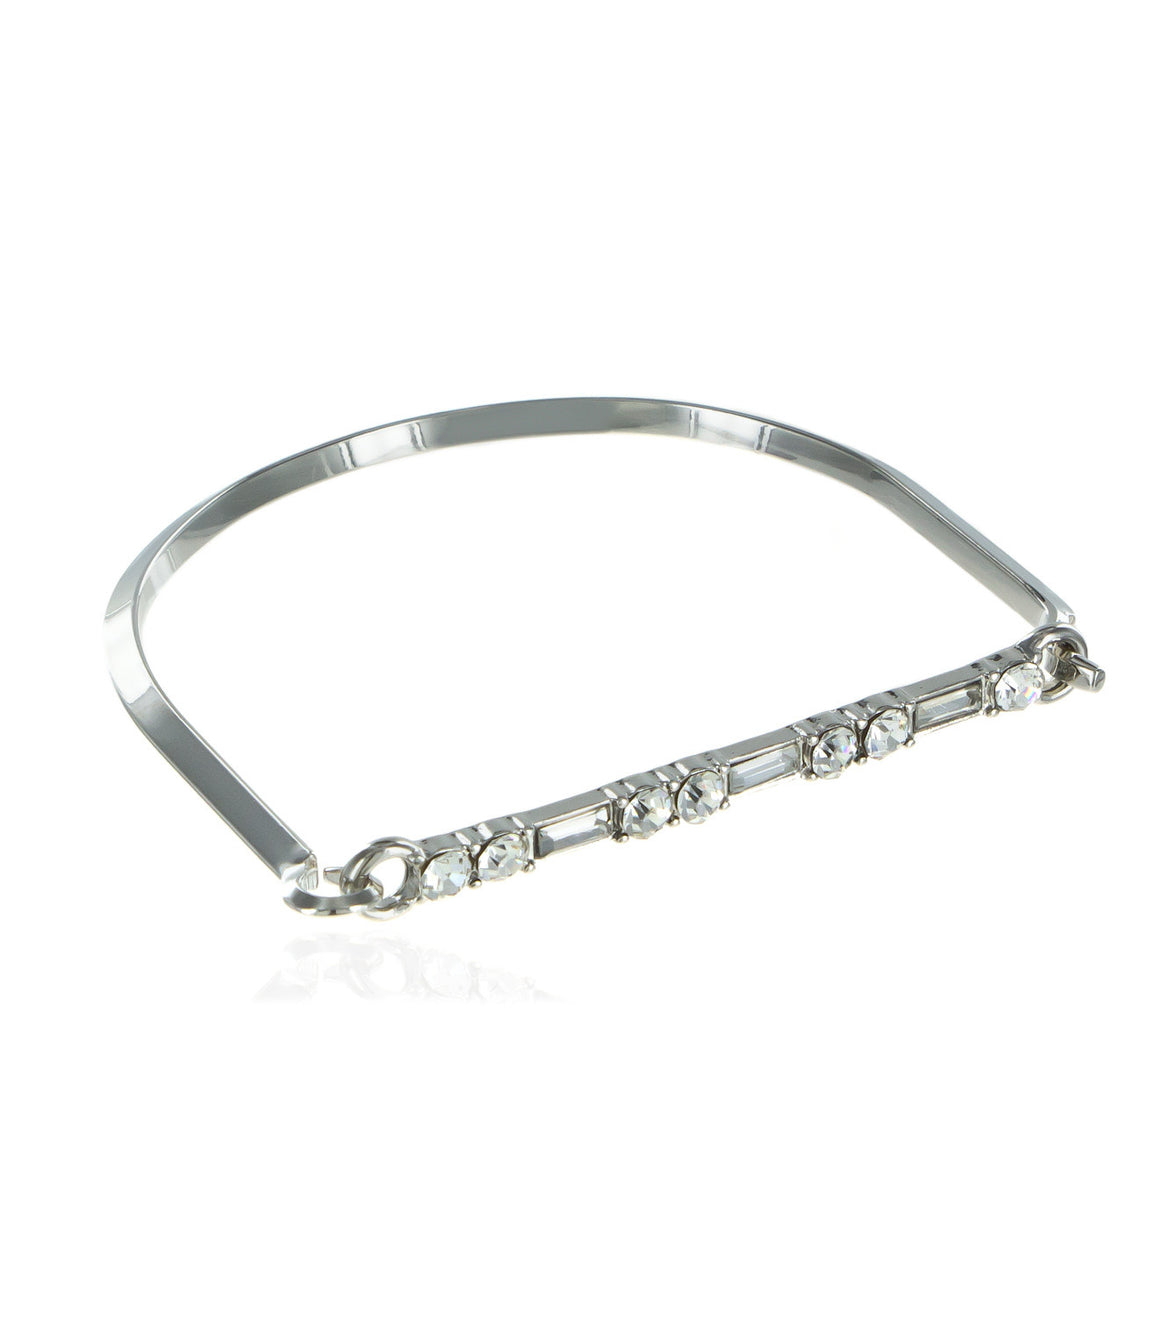 Straight bar rhinestone hinged cuff